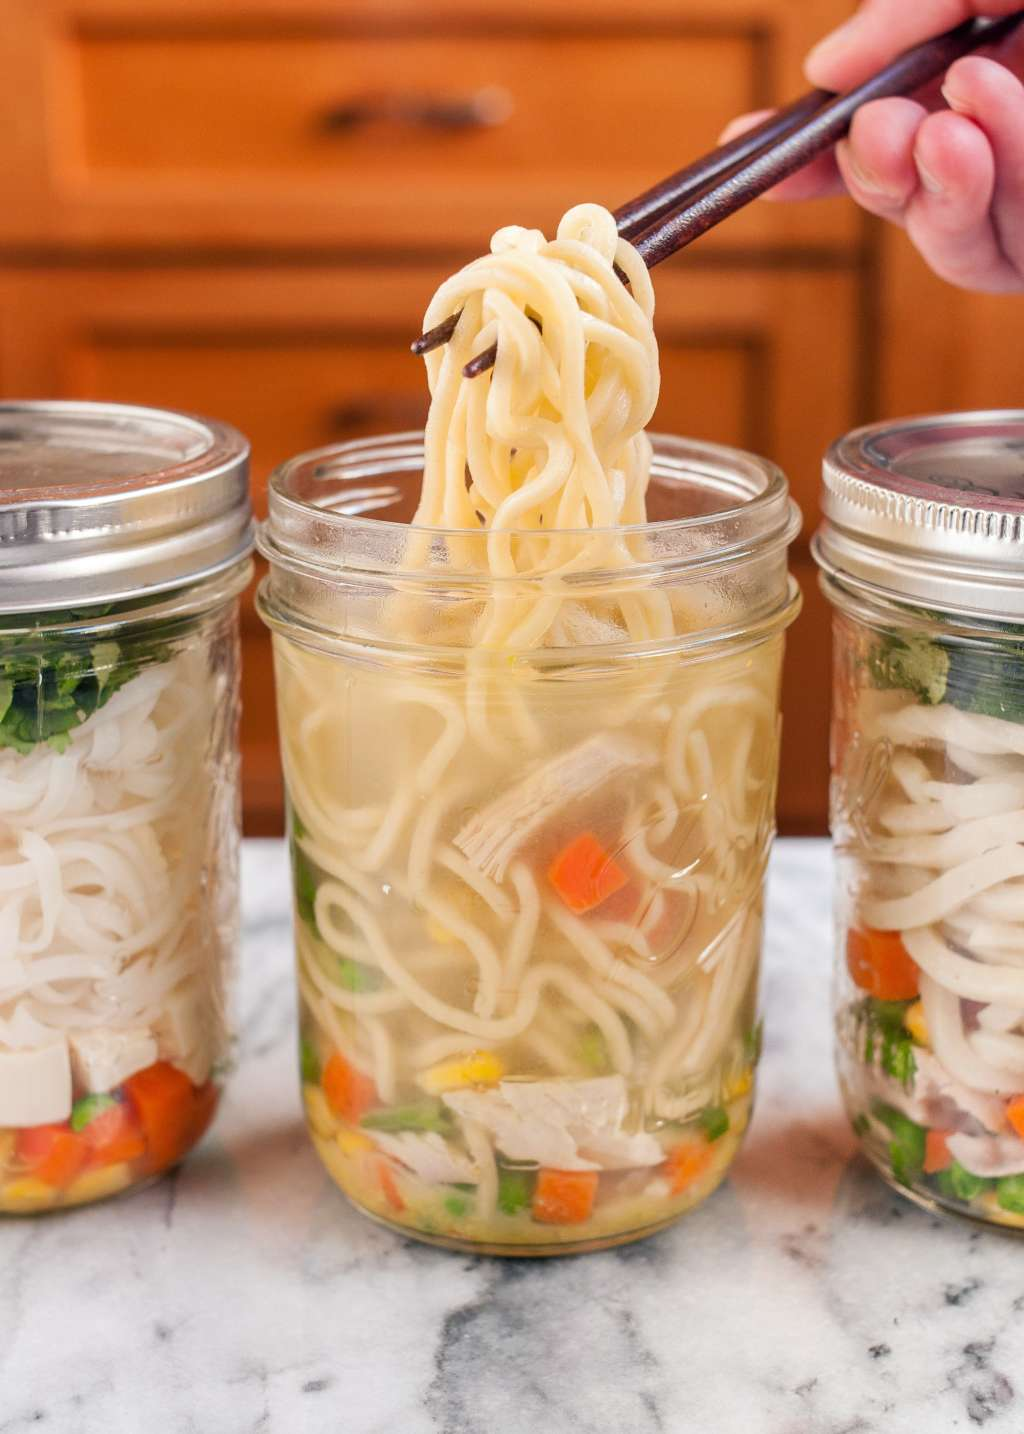 10 Things You Didn't Know You Could Do in a Mason Jar